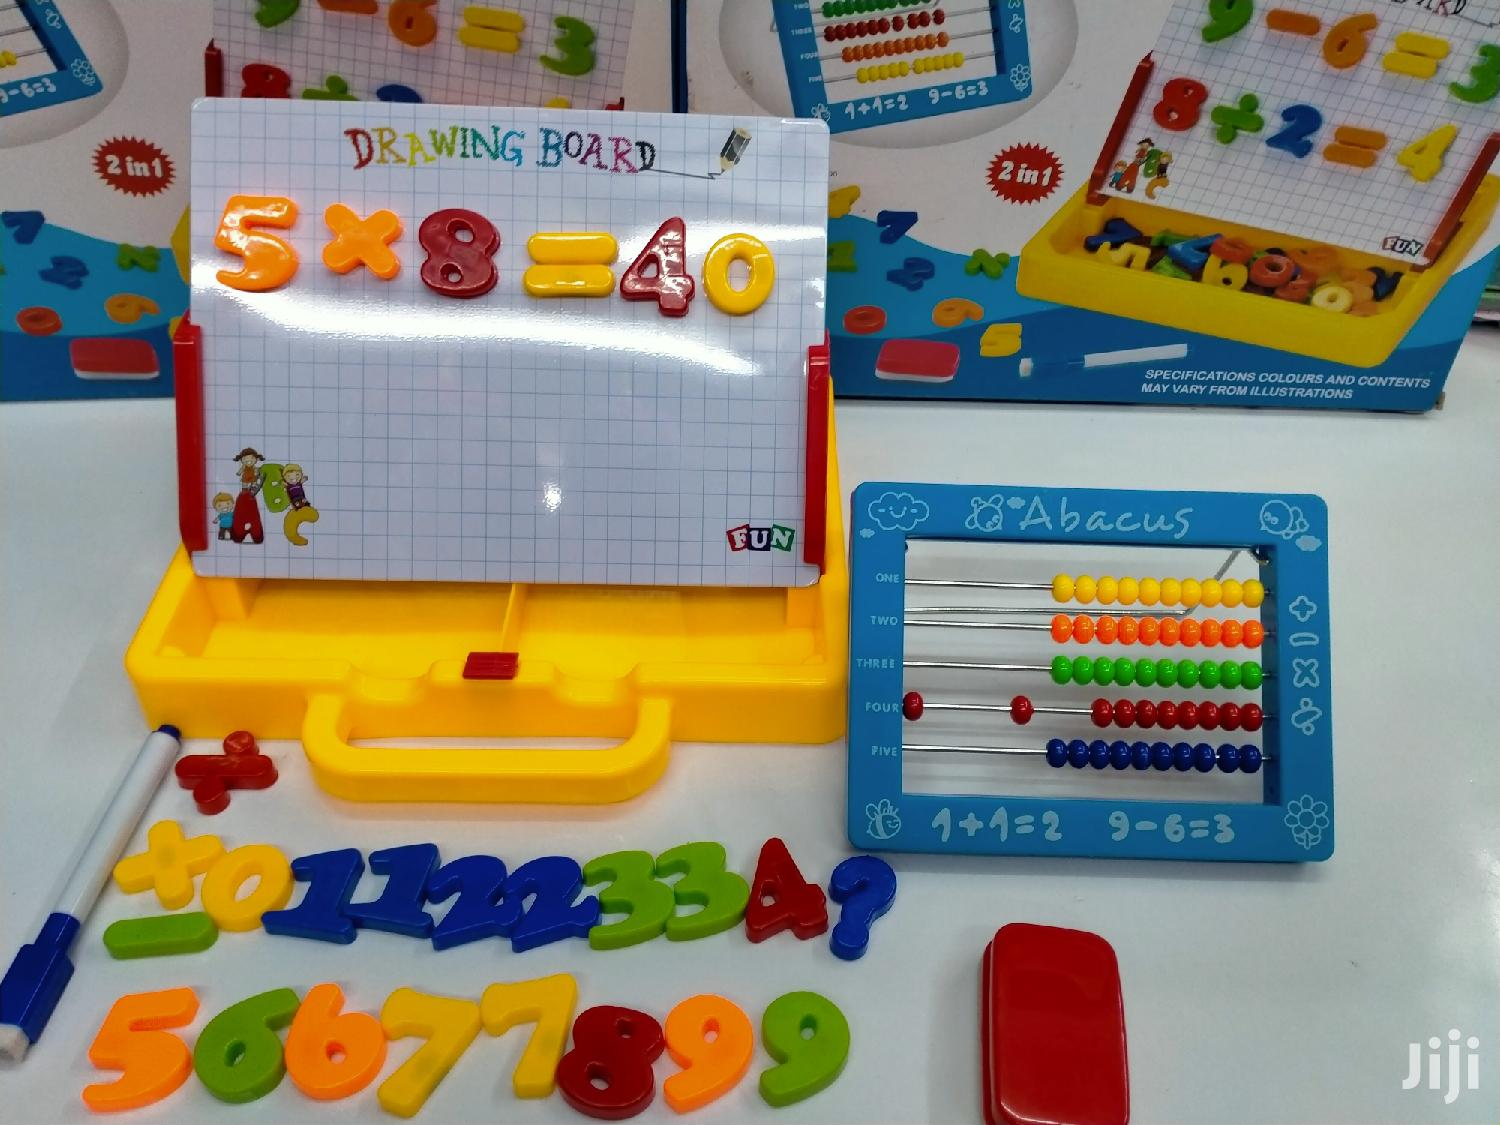 Magnetic Learning Board and Abacus | Toys for sale in Nairobi Central, Nairobi, Kenya